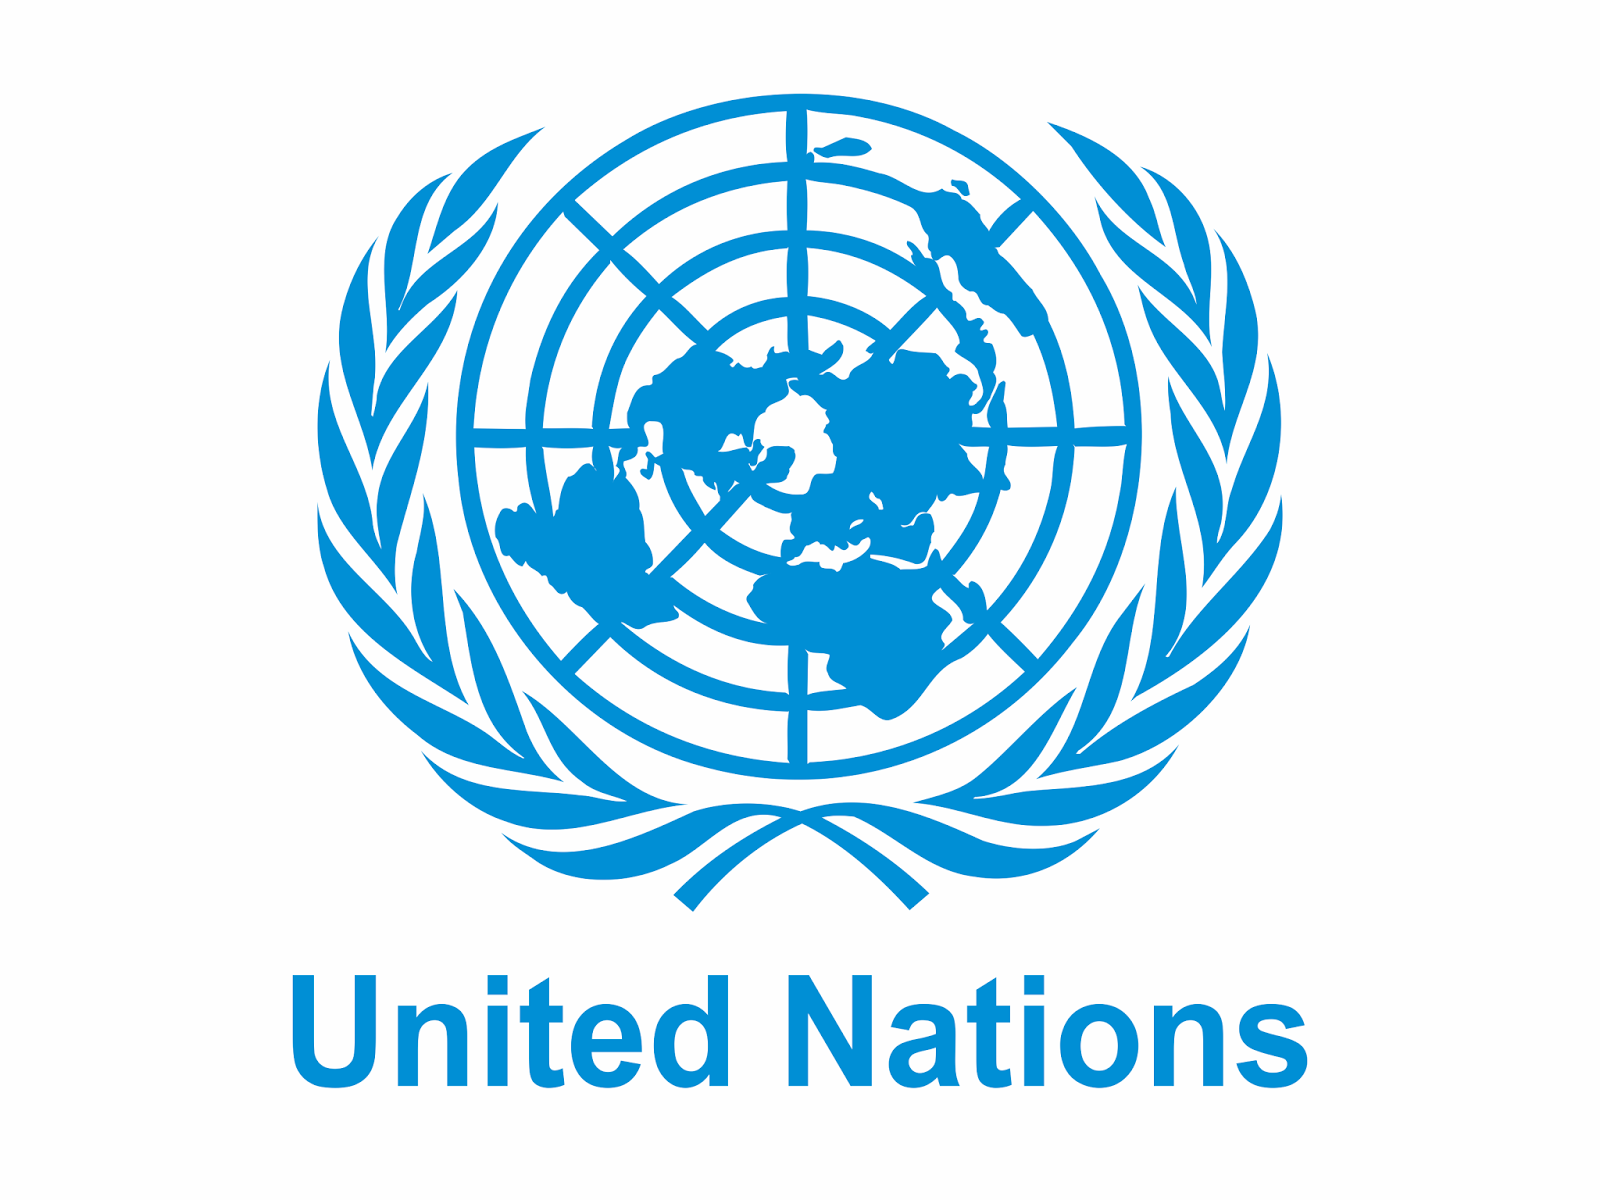 un united nations logo free cdr format gudril logo